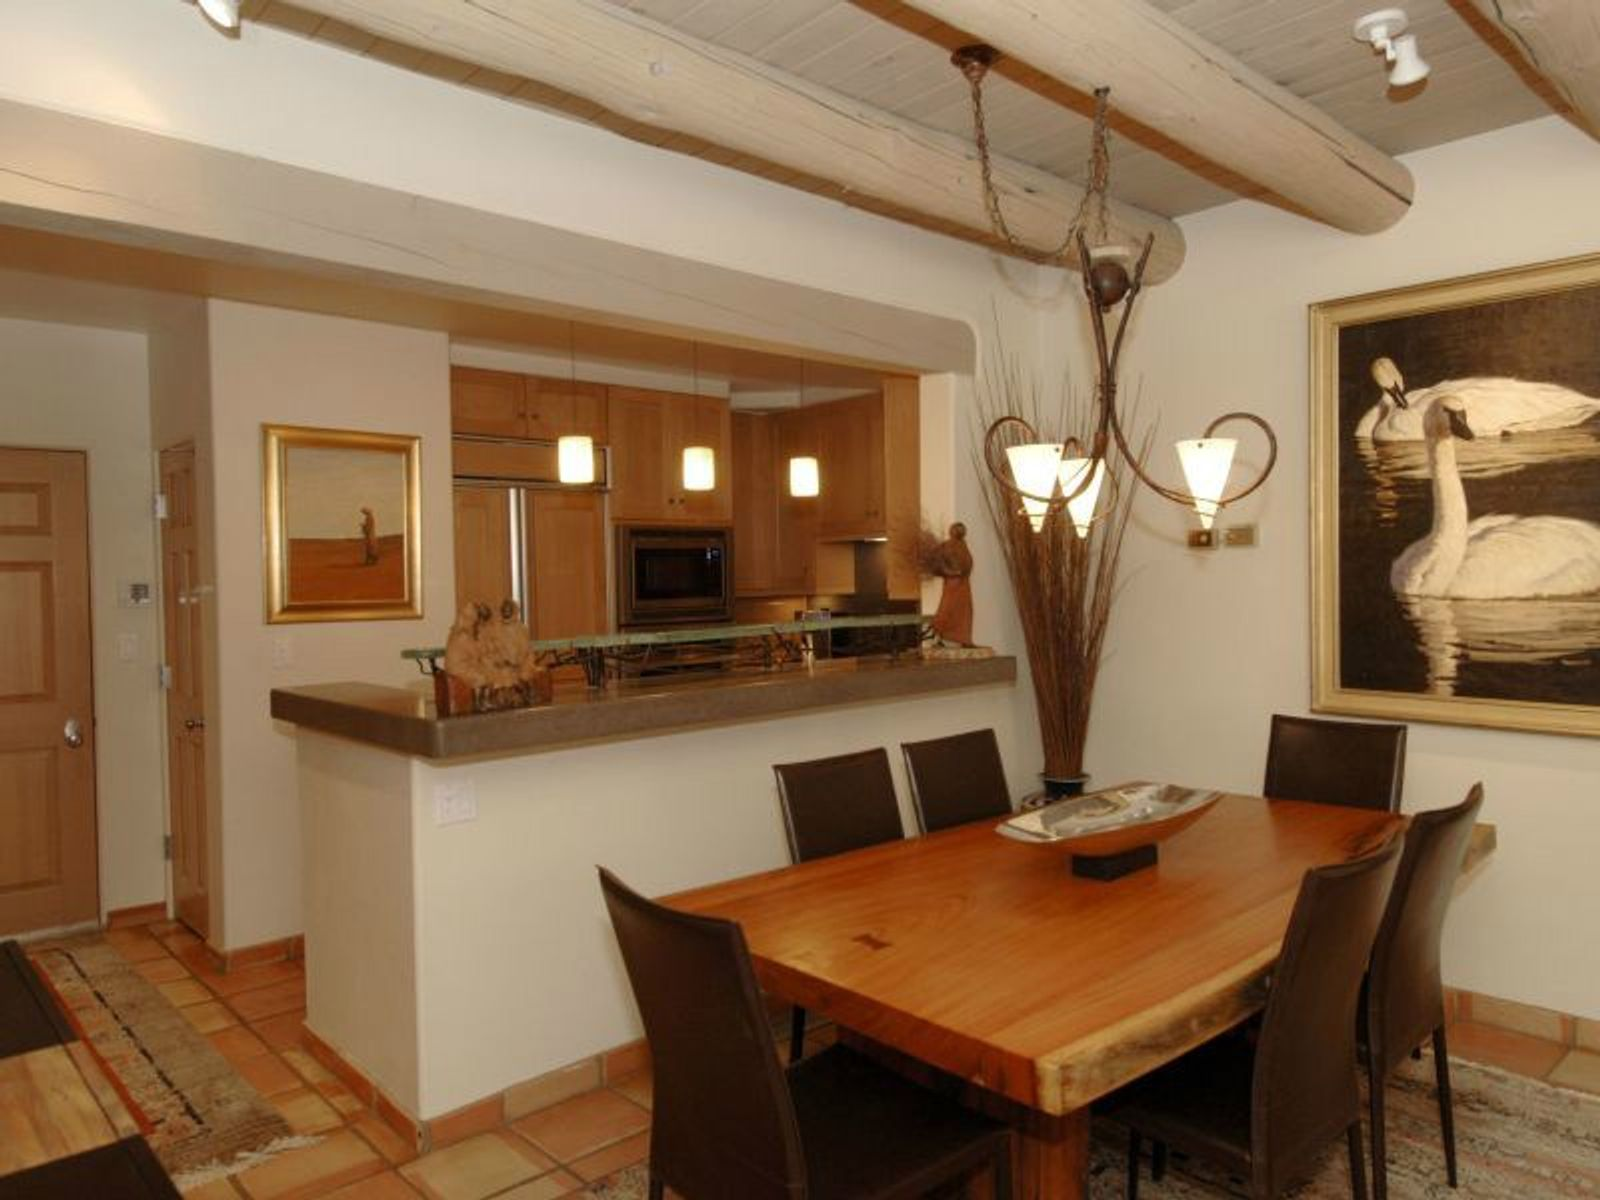 3101 Old Pecos Trl #116, Santa Fe NM Condominium - Santa Fe Real Estate